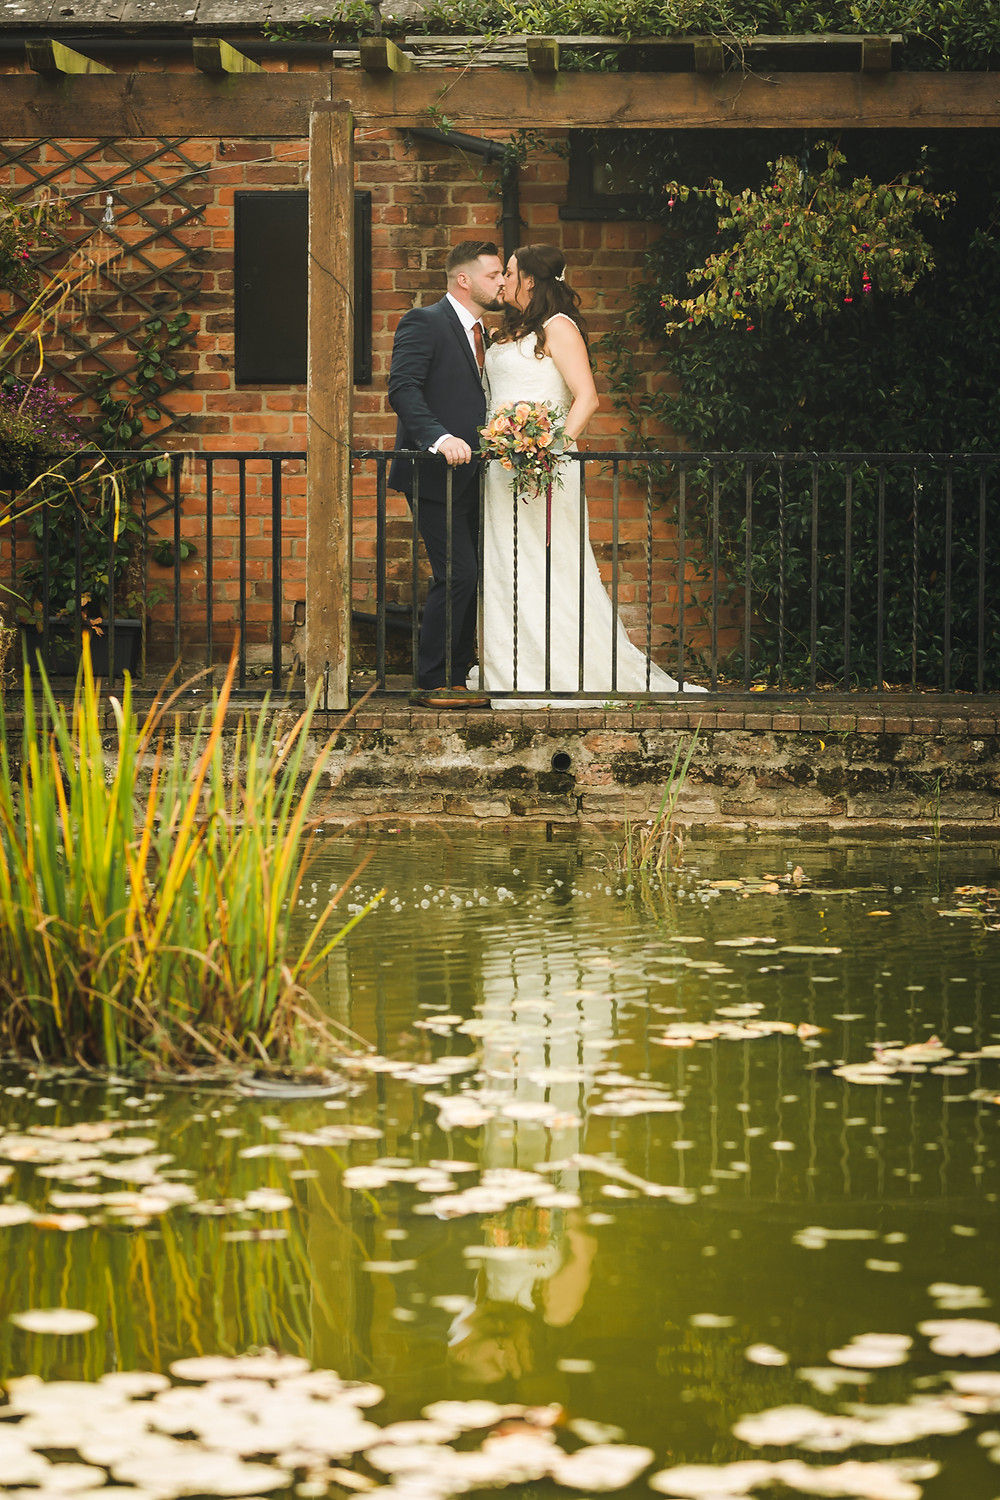 newlywed portrait photography reflection